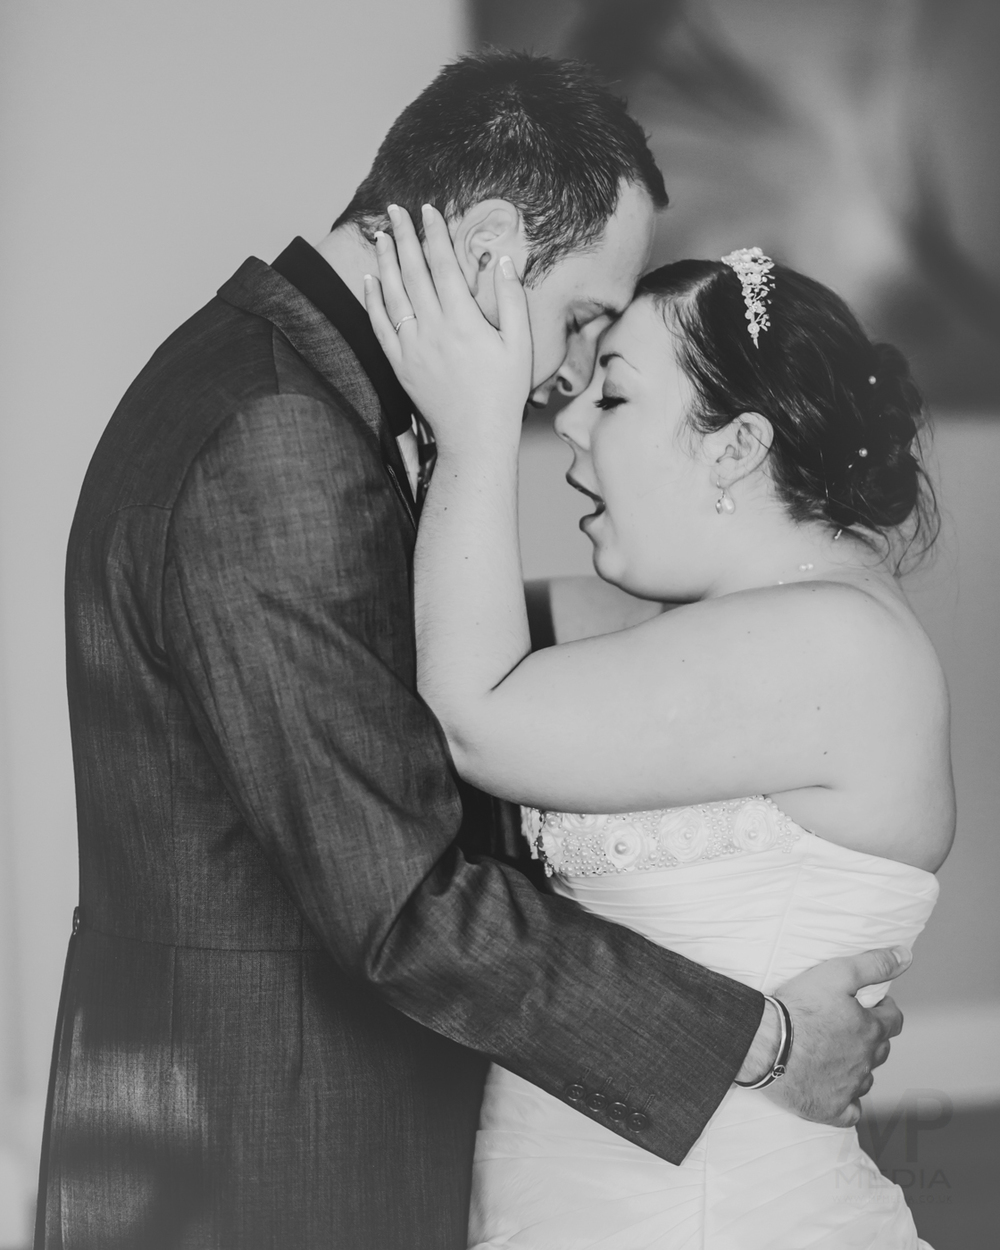 602 - Chris and Natalies Wedding (MAIN) - DO NOT SHARE THIS IMAGES ONLINE -4932.JPG